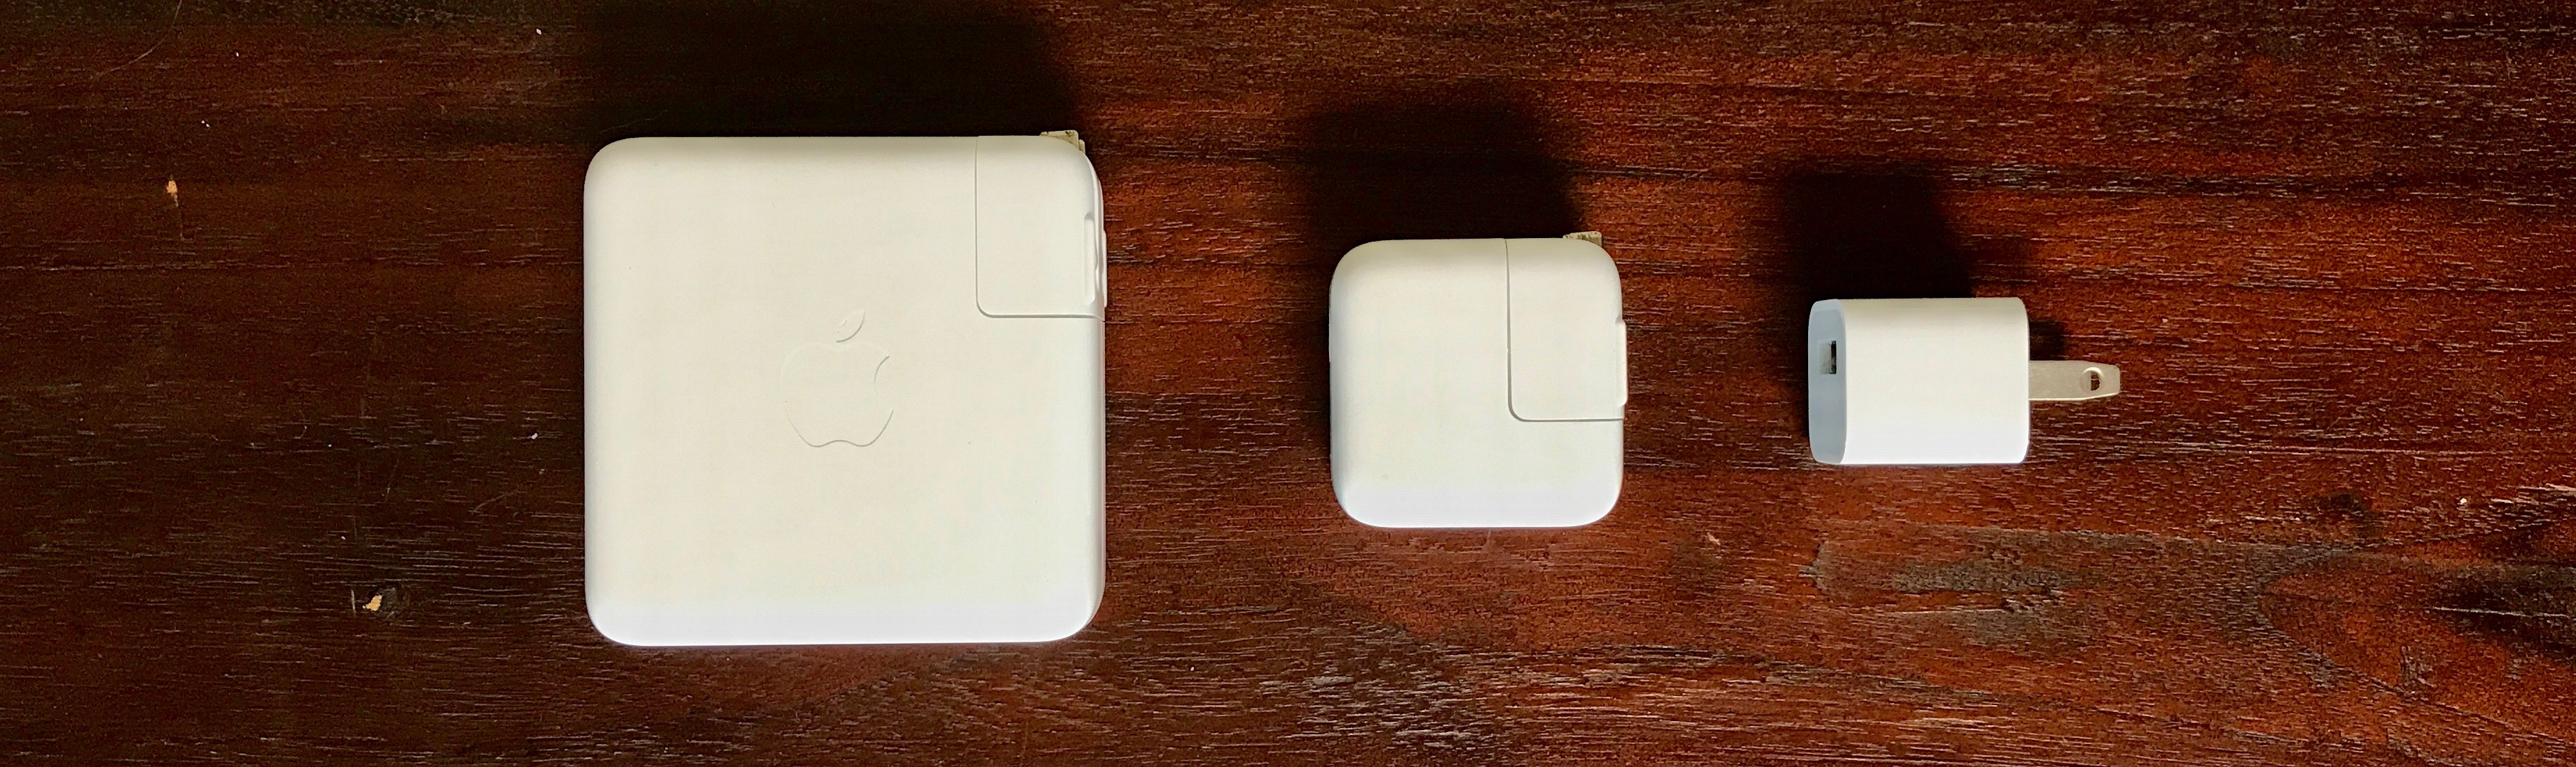 Image showing 5W, 12W and 87W power adapters